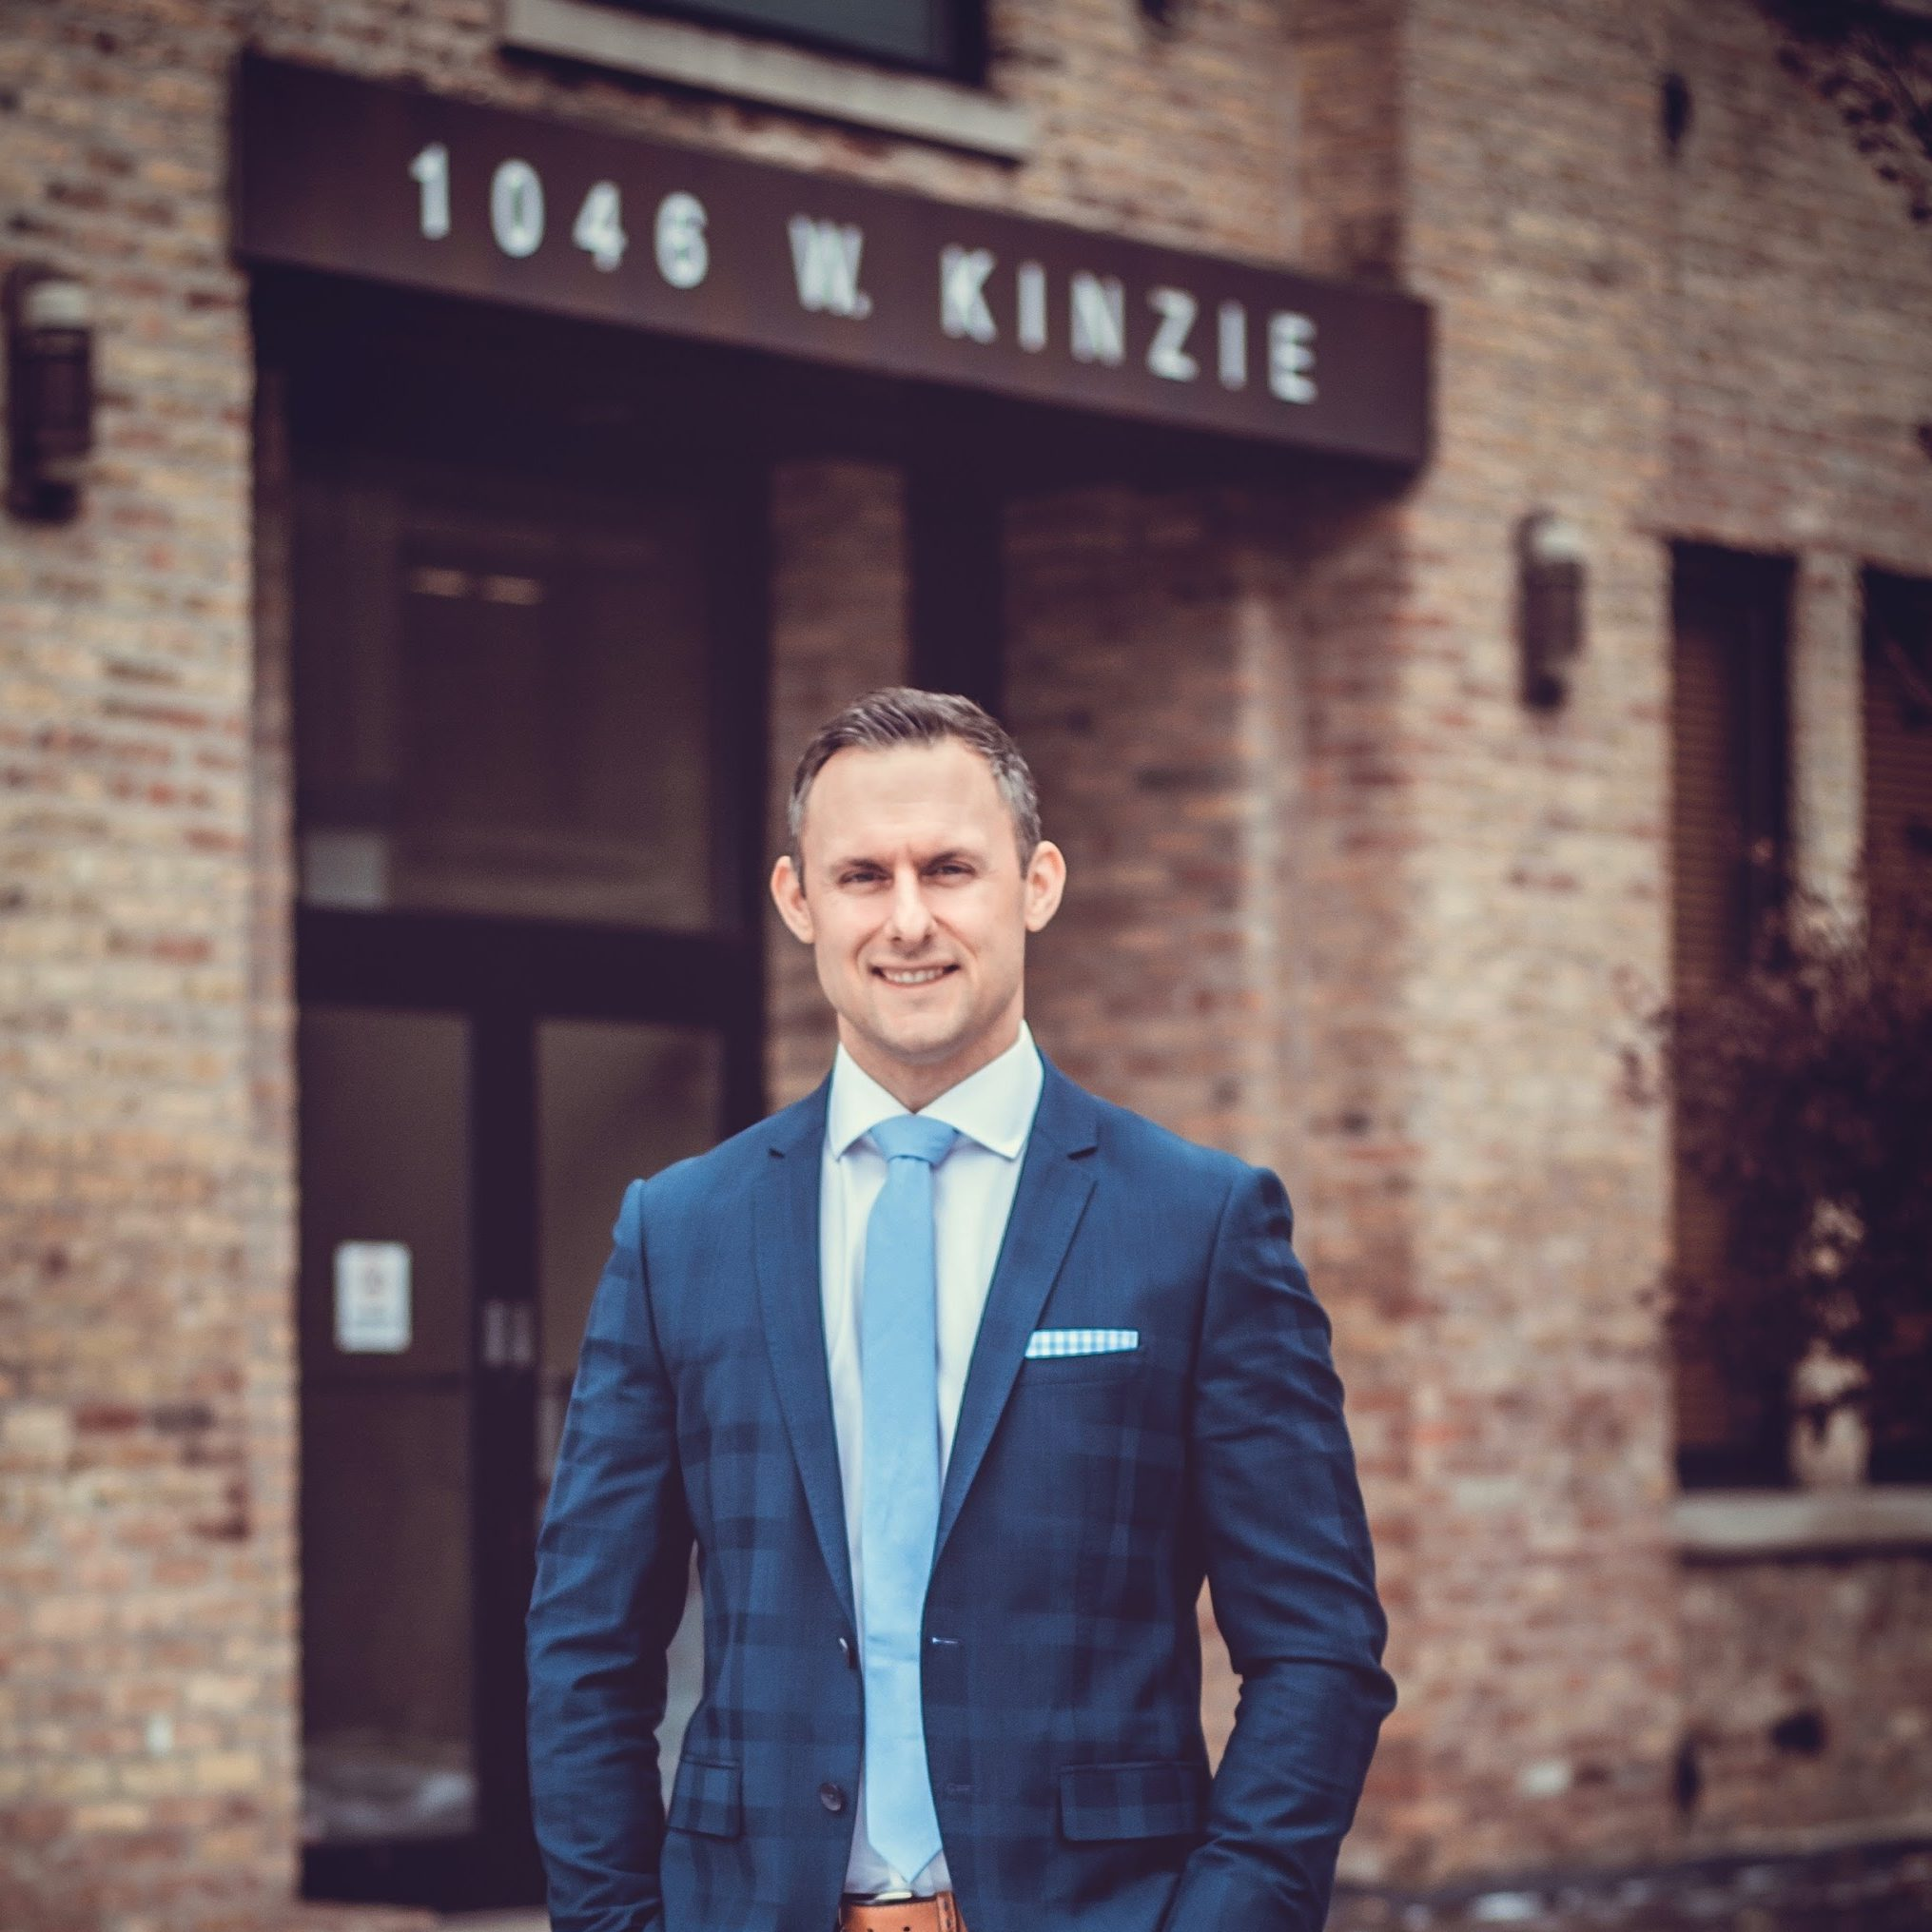 Mike Opyd - starting a real estate brokerage